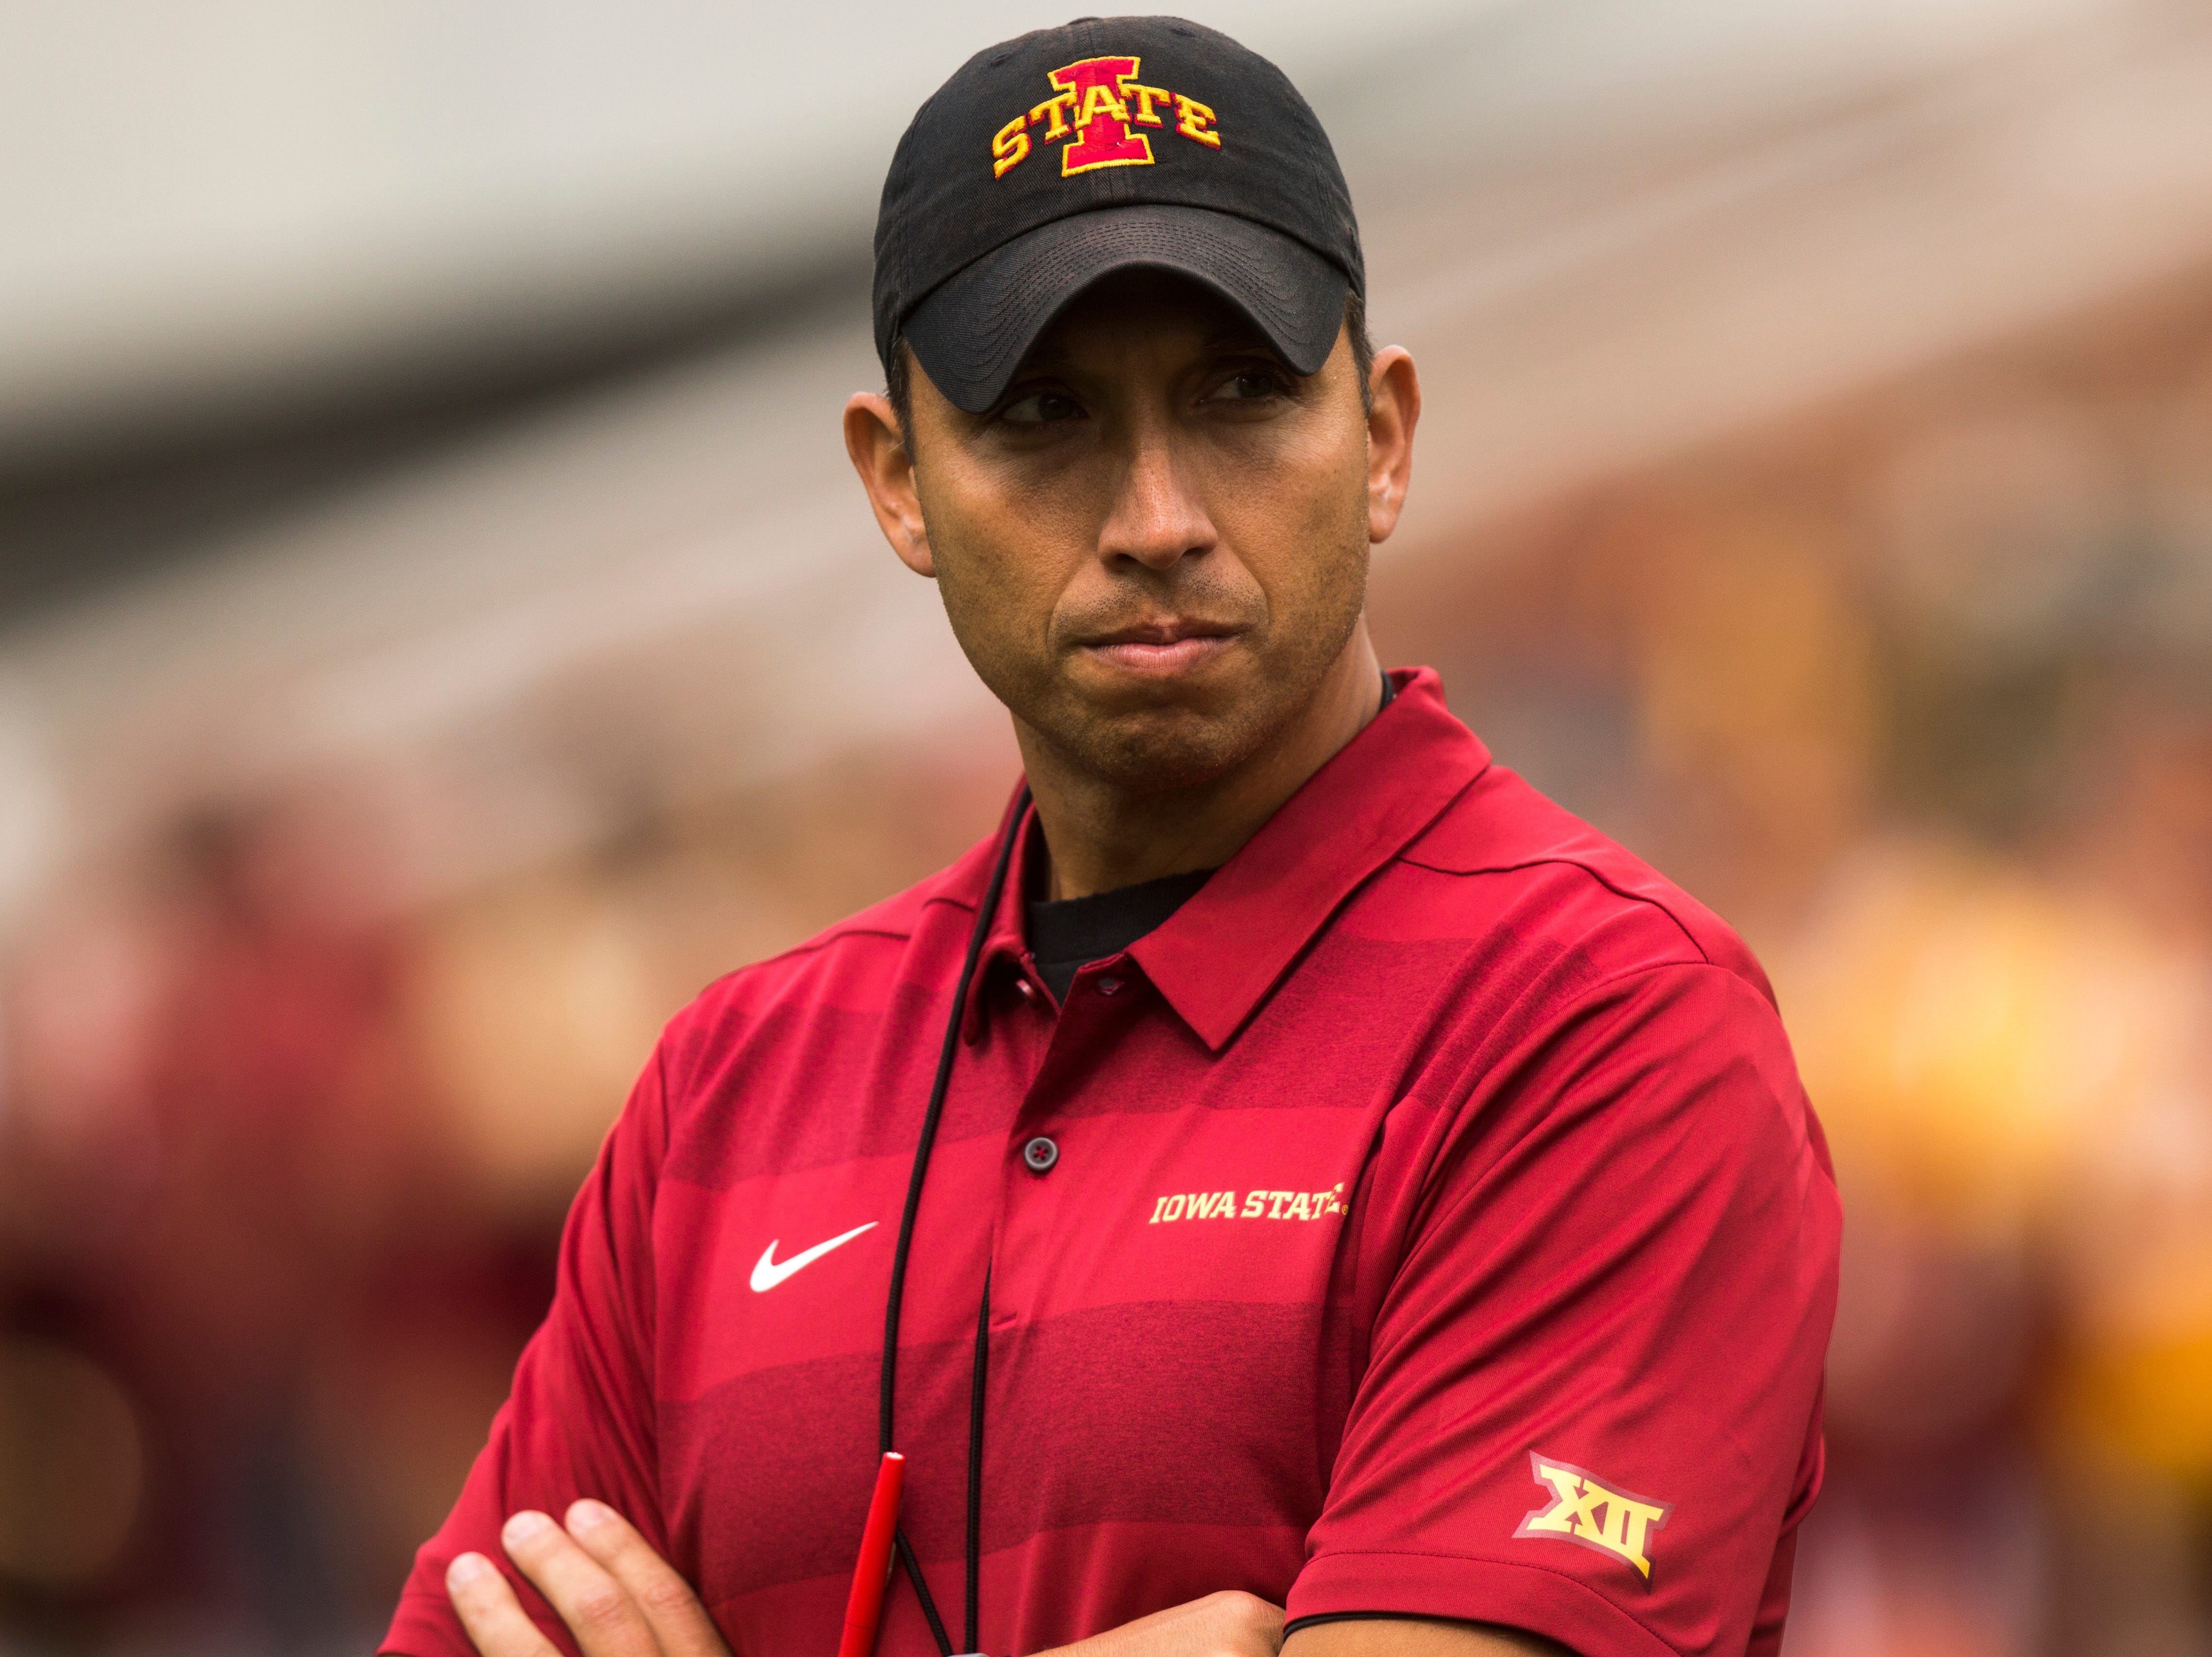 Iowa State head coach Matt Campbell watches players warm up before the Cy-Hawk NCAA football game on Saturday, Sept. 8, 2018, at Kinnick Stadium in Iowa City.